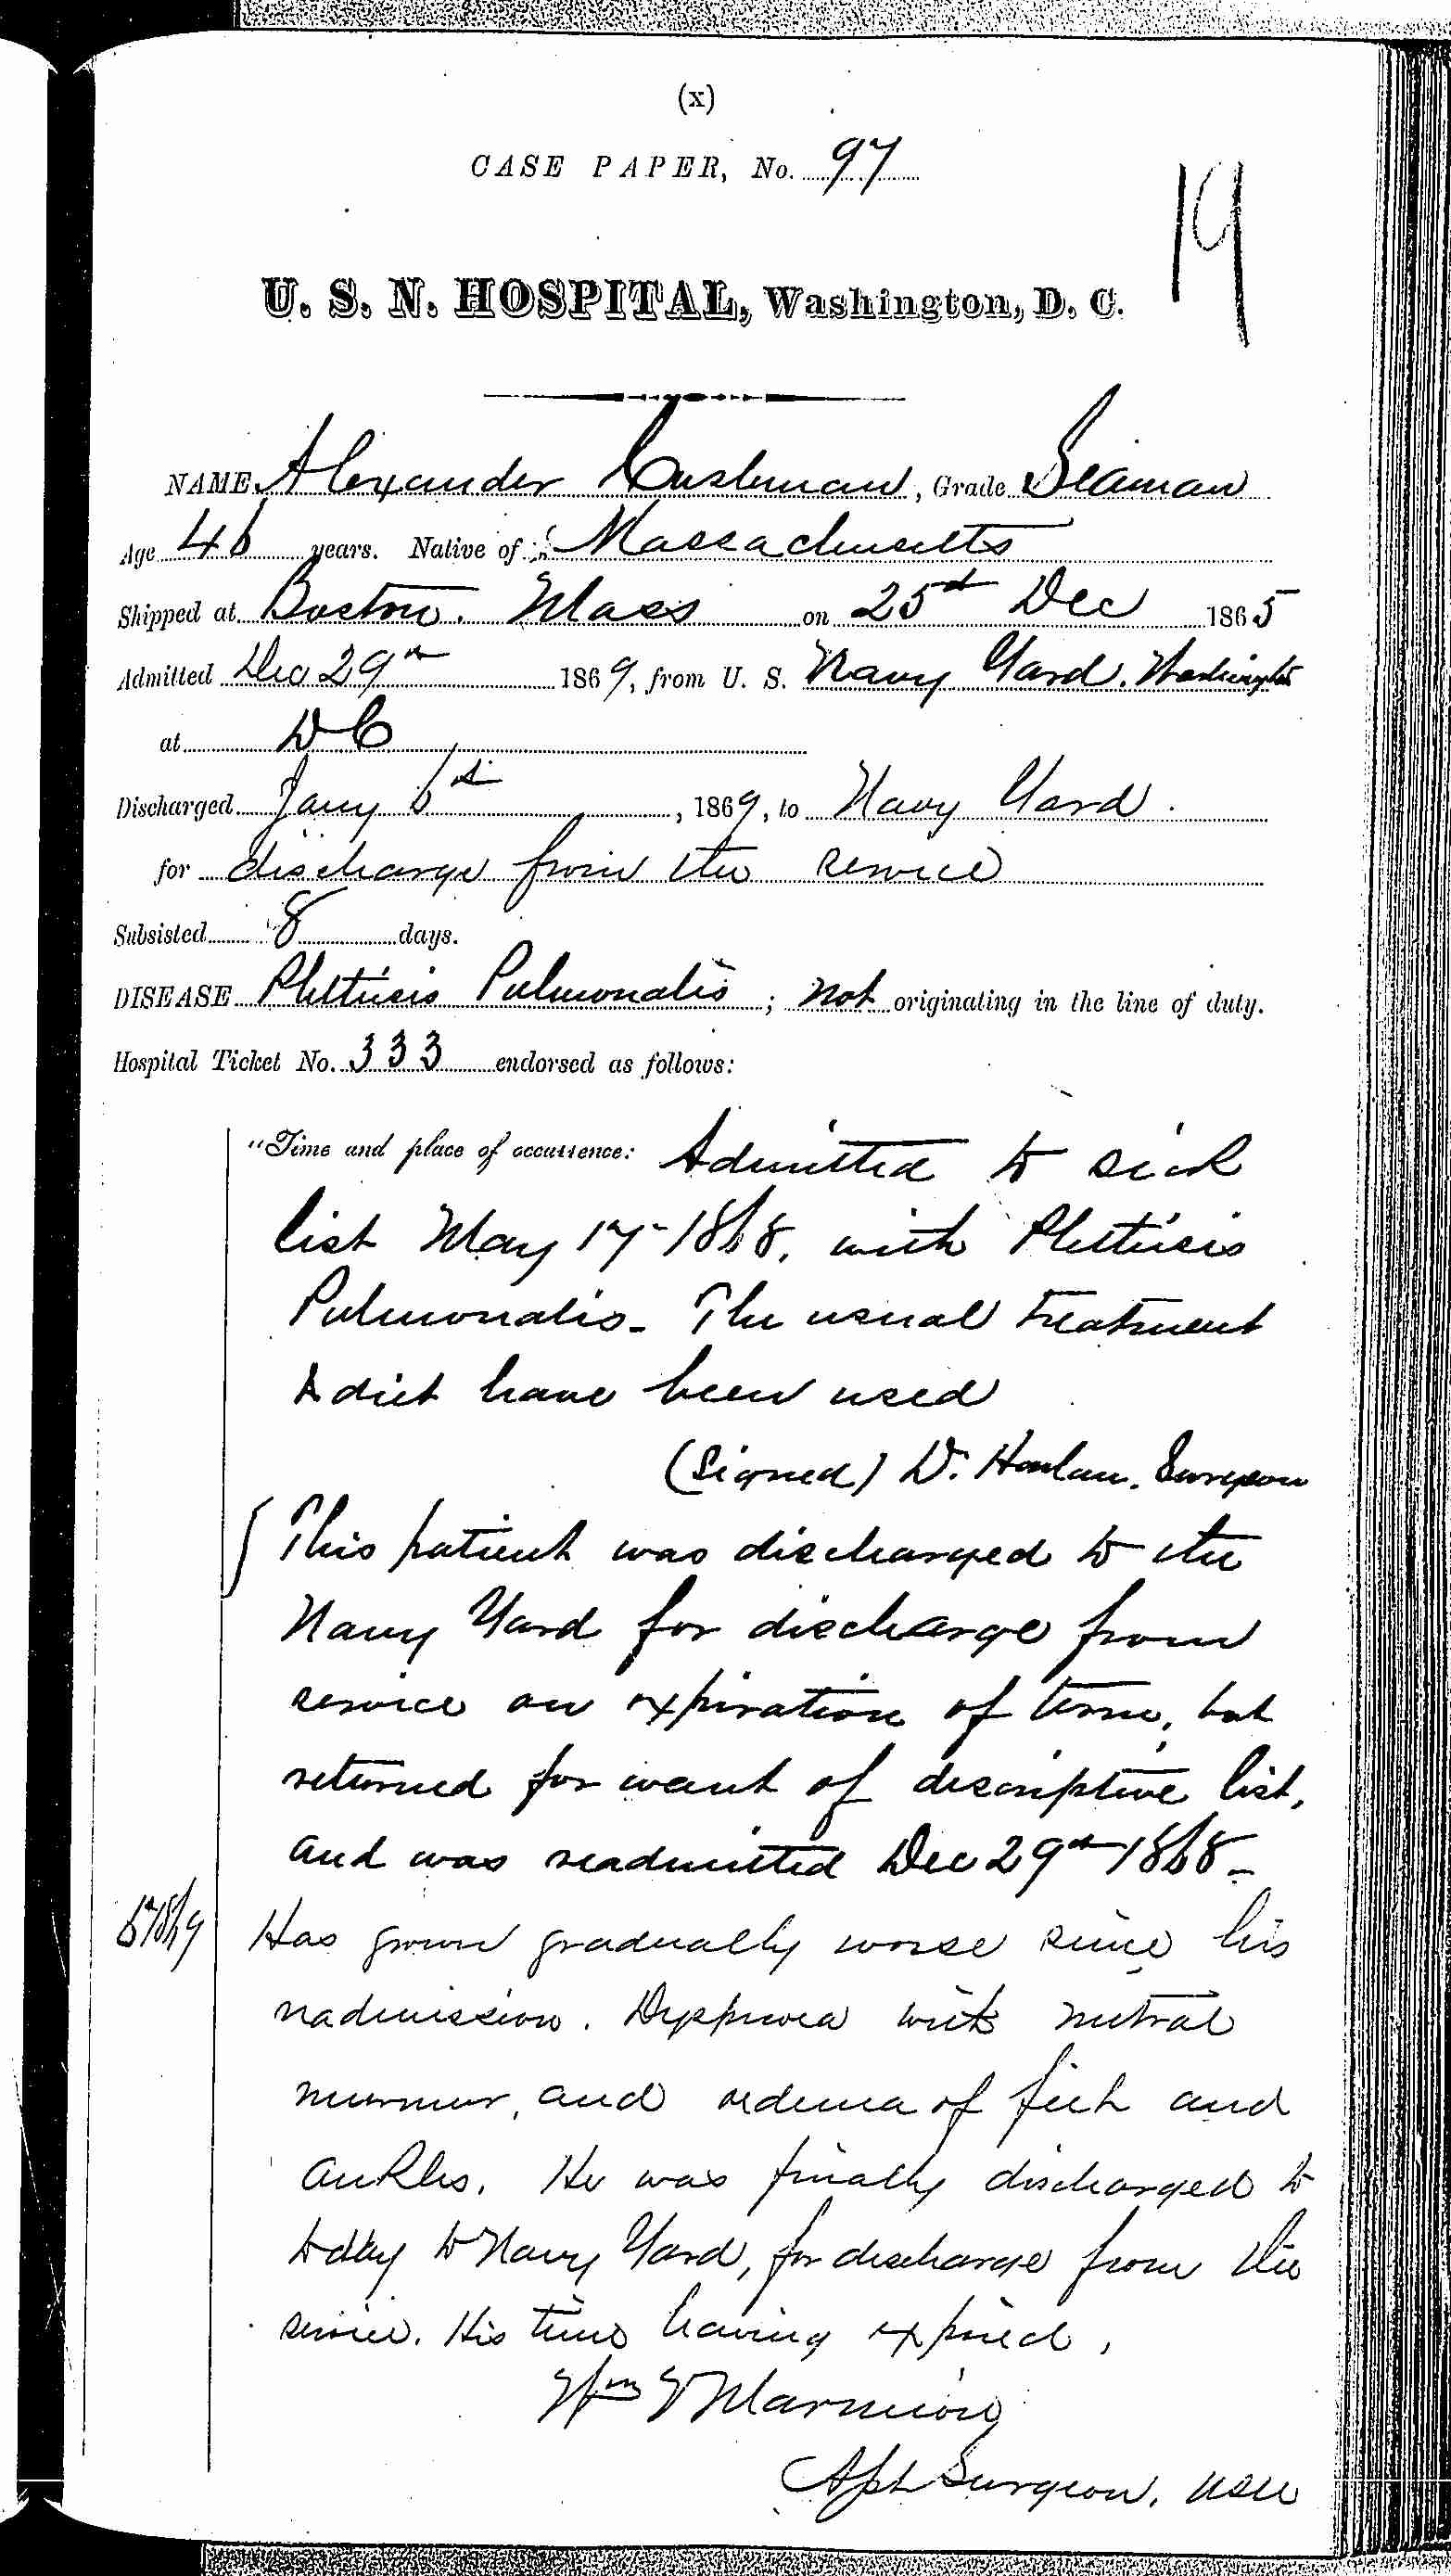 Entry for Charles Wyatt (page 1 of 1) in the log Hospital Tickets and Case Papers - Naval Hospital - Washington, D.C. - 1868-69